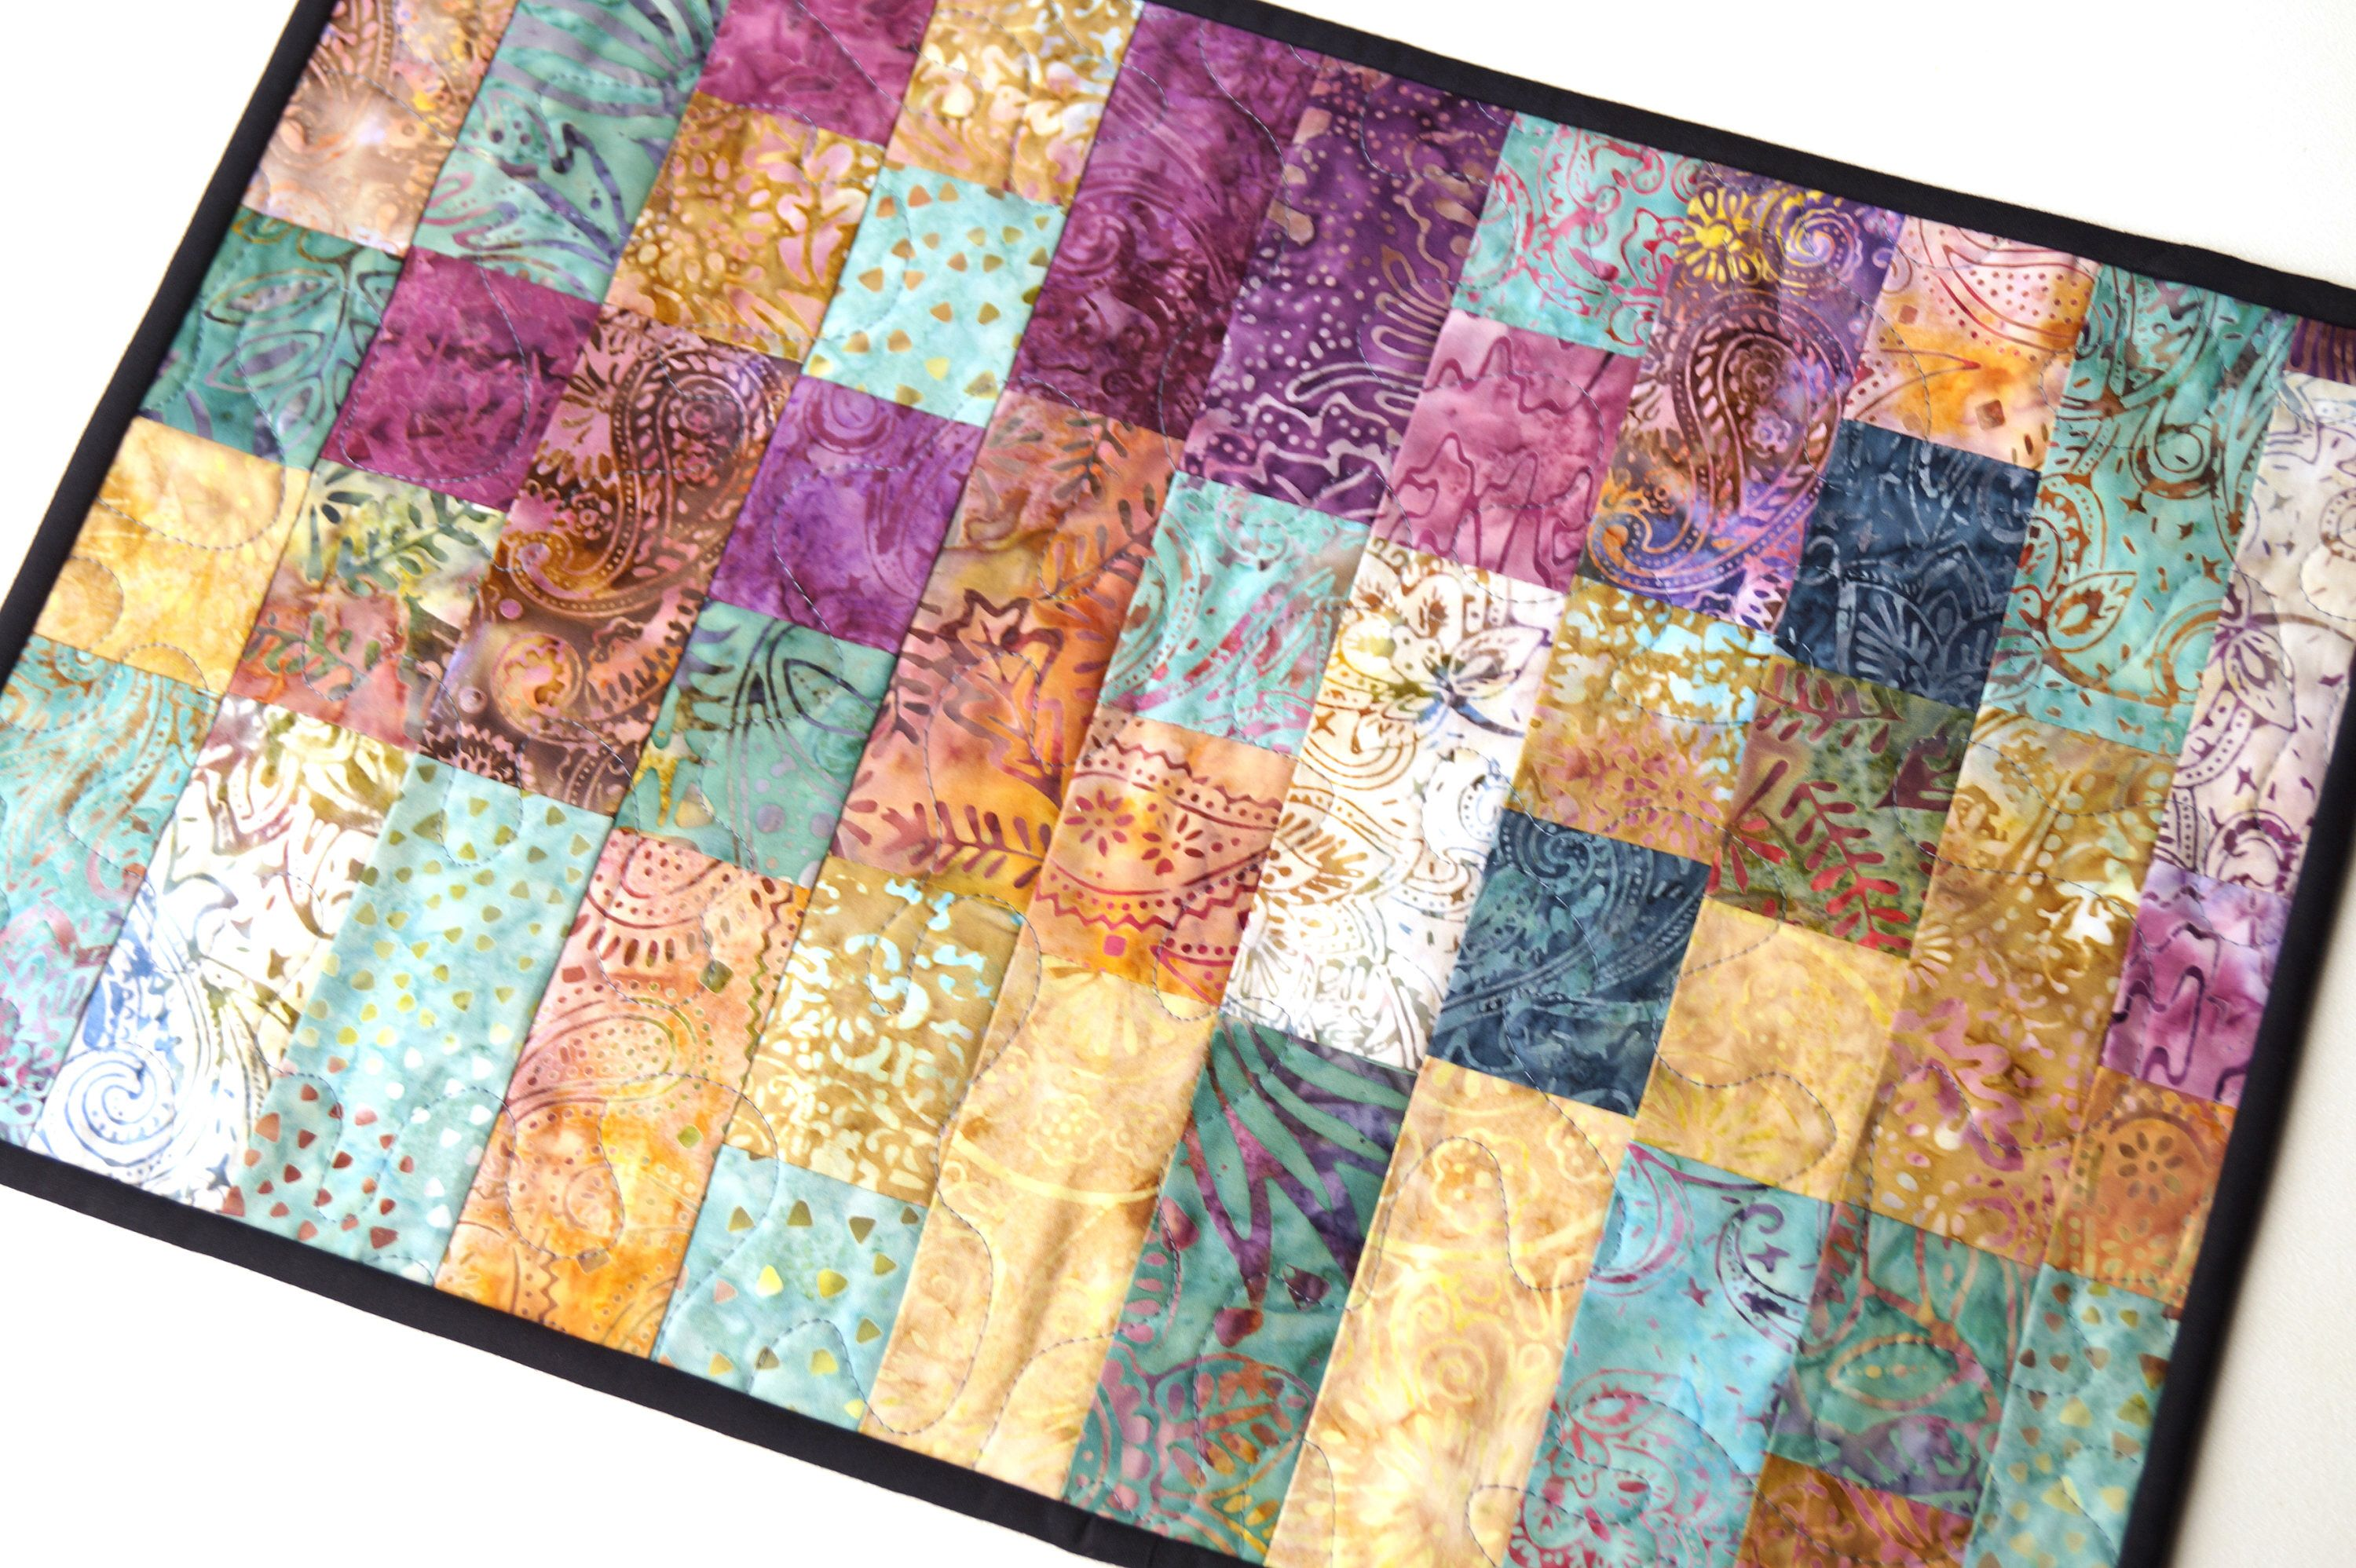 Batik Patchwork Mini Quilt or Large Place Mat in Quilted Fabrics in Shades of Pink, Purple, Blue, Aqua and Cream by MyBitOfWonder on Etsy https://www.etsy.com/listing/545642896/batik-patchwork-mini-quilt-or-large